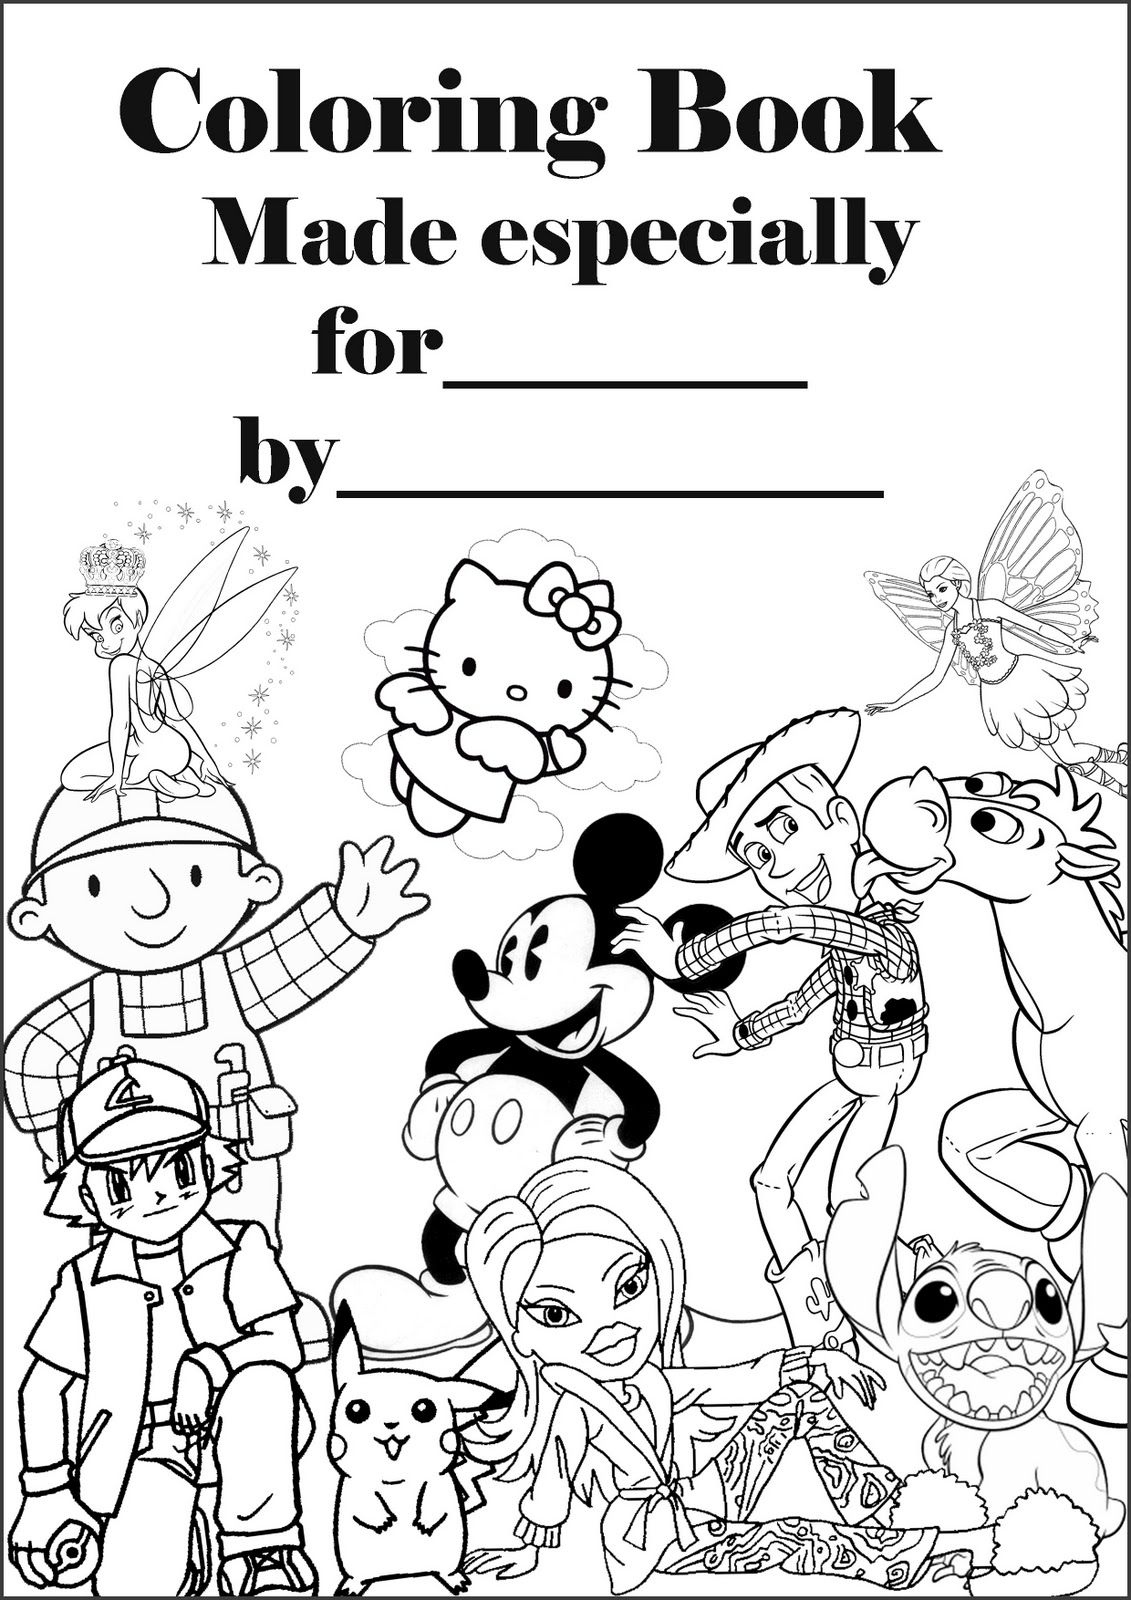 Coloring Book Personalised Cover Page Personalized Coloring Book